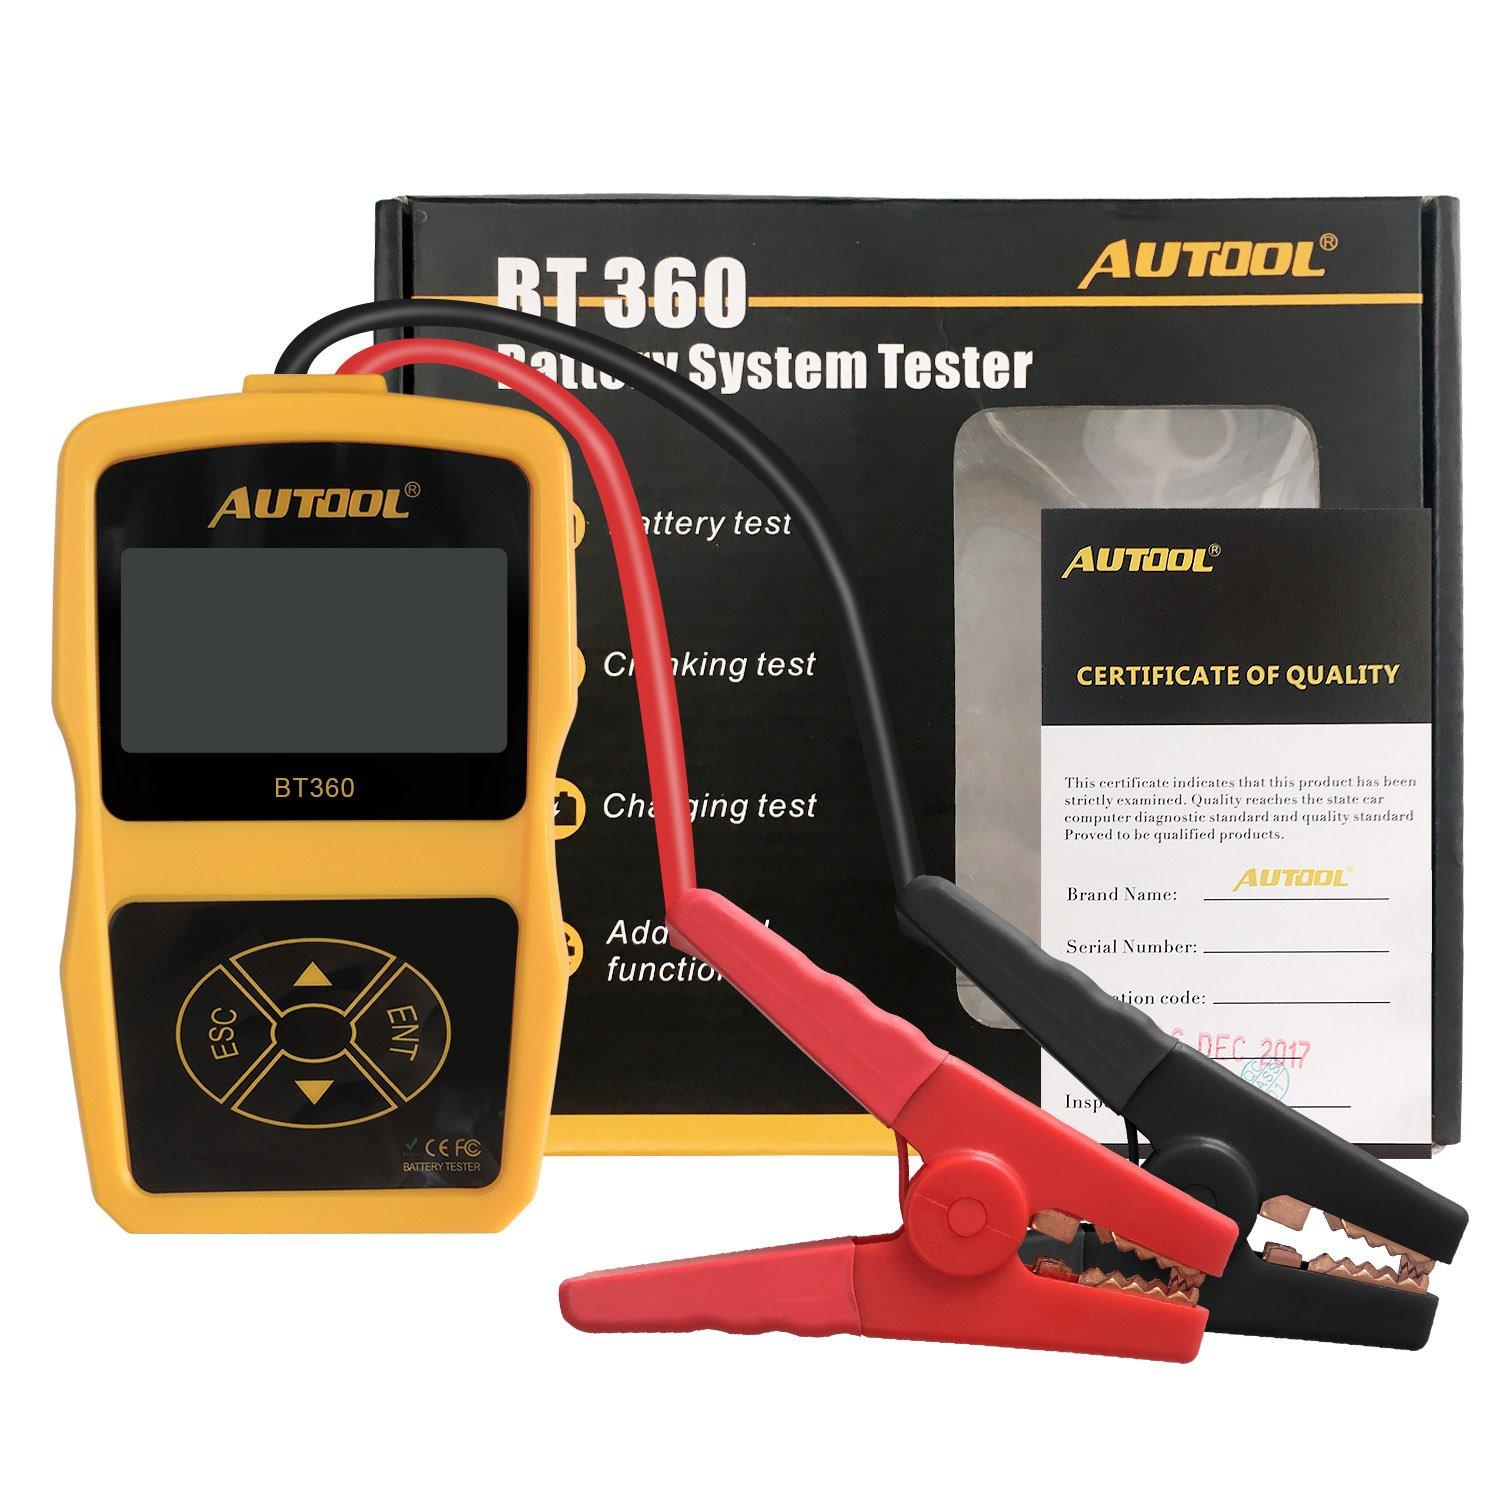 AUTOOL Auto Battery System Tester CCA 100-2400 Bad Cell Test for Regular Flooded, Auto Cranking and Charging System Diagnostic Analyzer for Domestic Cars, Boats by AUTOOL (Image #2)